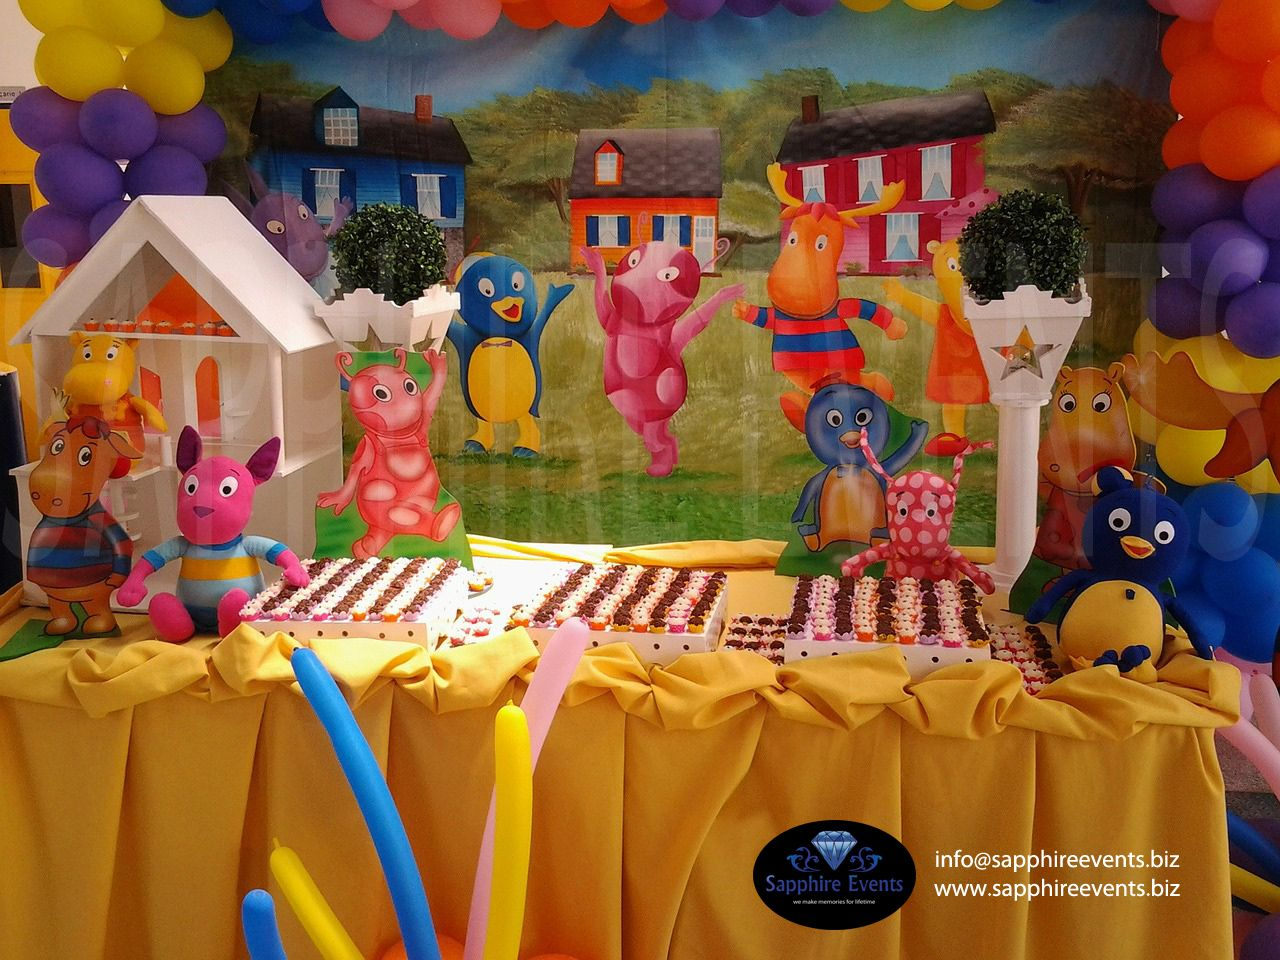 Your Birthday Party Planner in Karachi Pakistan infosapphireevents